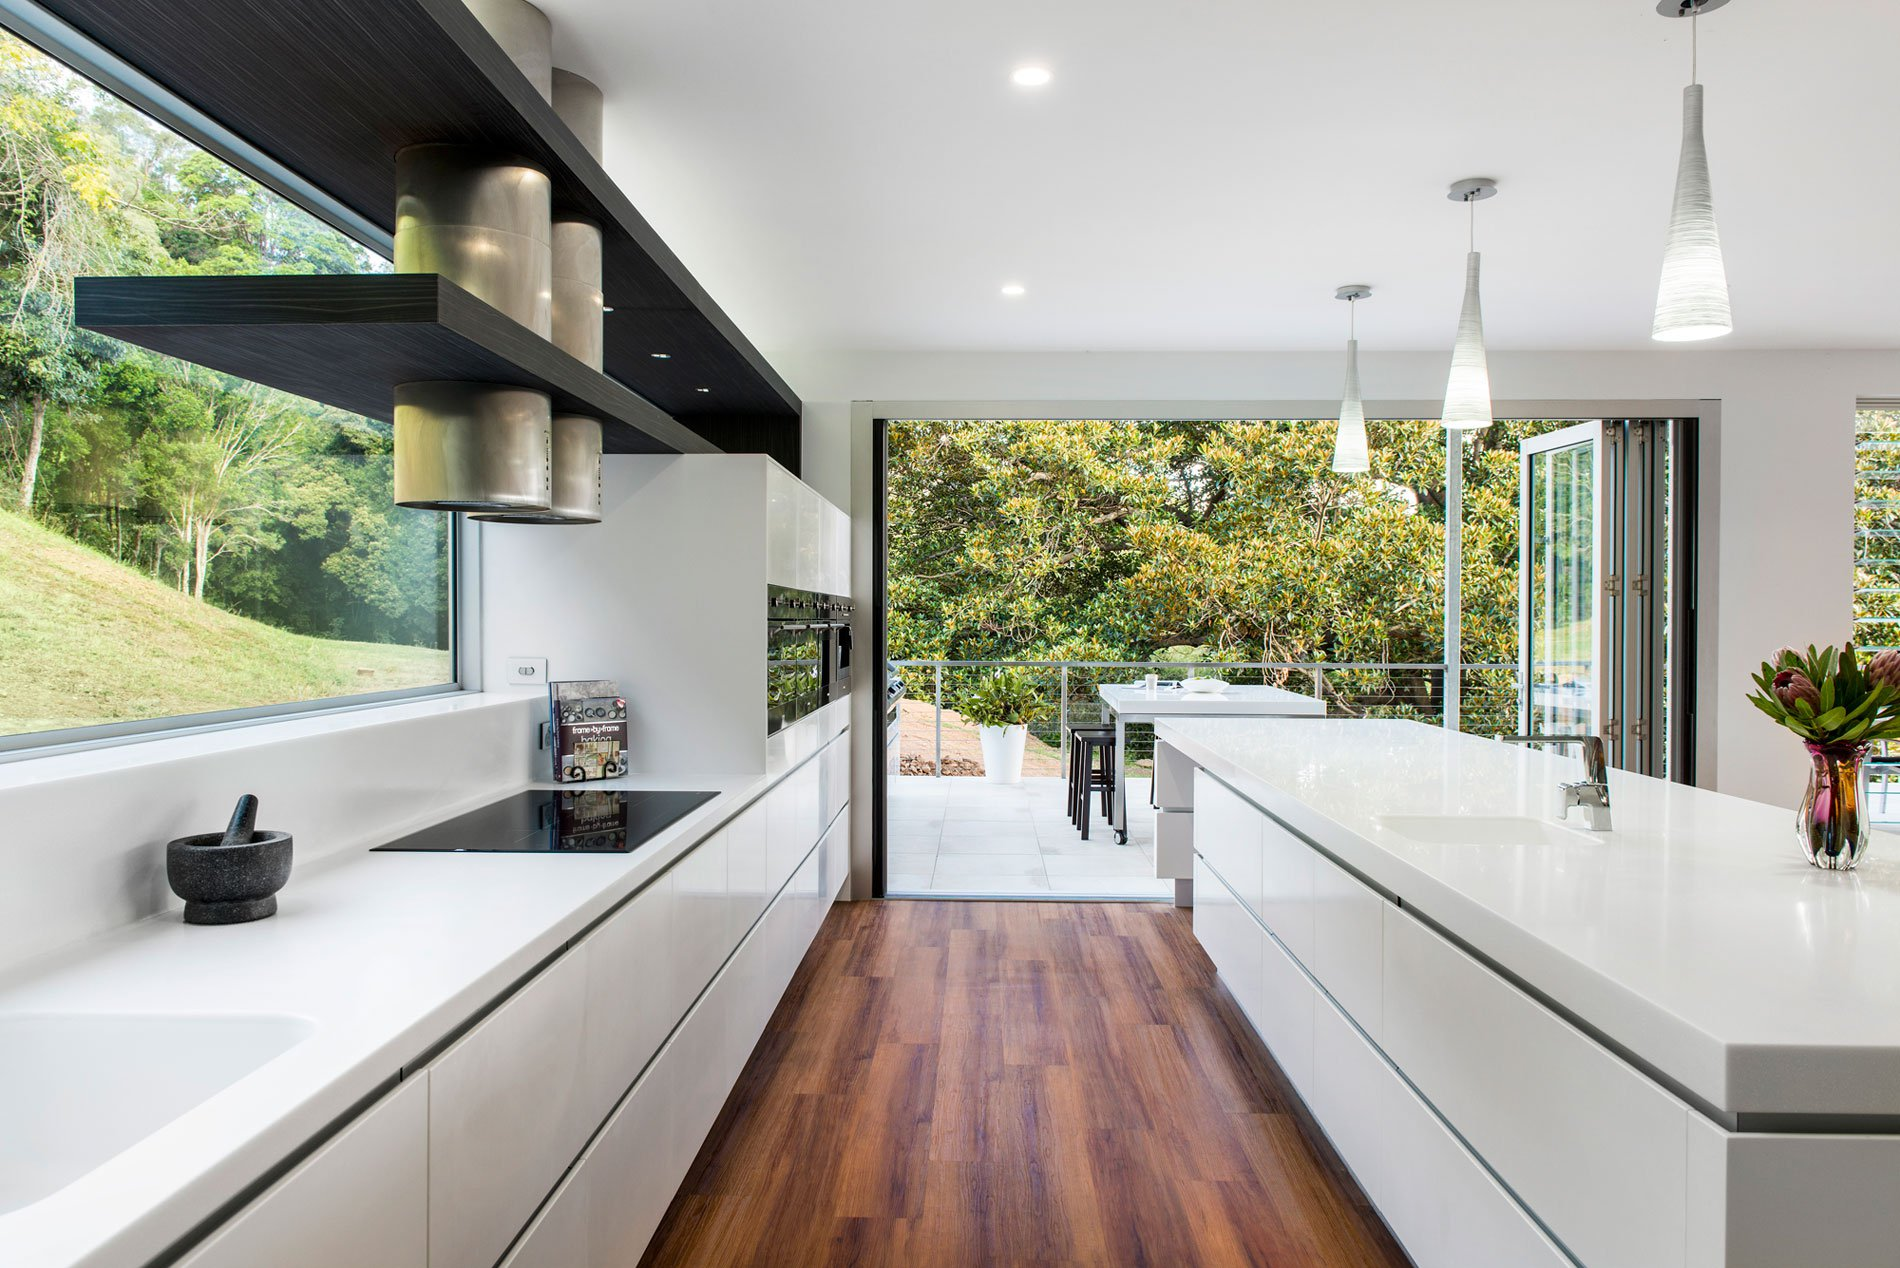 Designer Kitchen designer kitchen in samfordkim duffin of sublime architectural